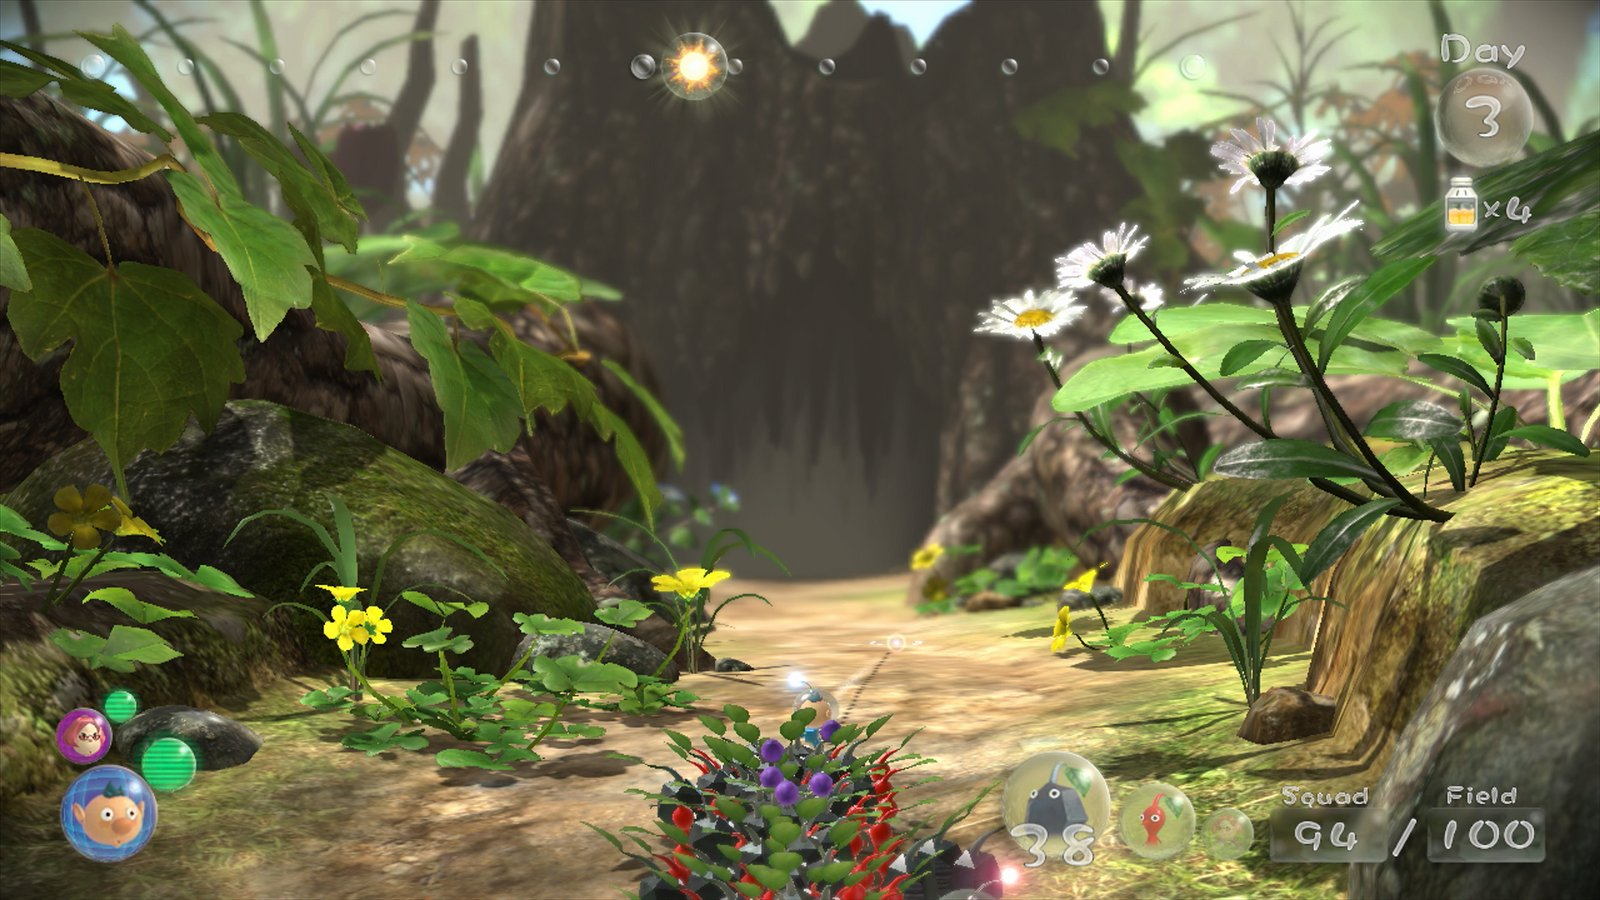 7 Games We Want To See Ported From The Wii U To The Nintendo